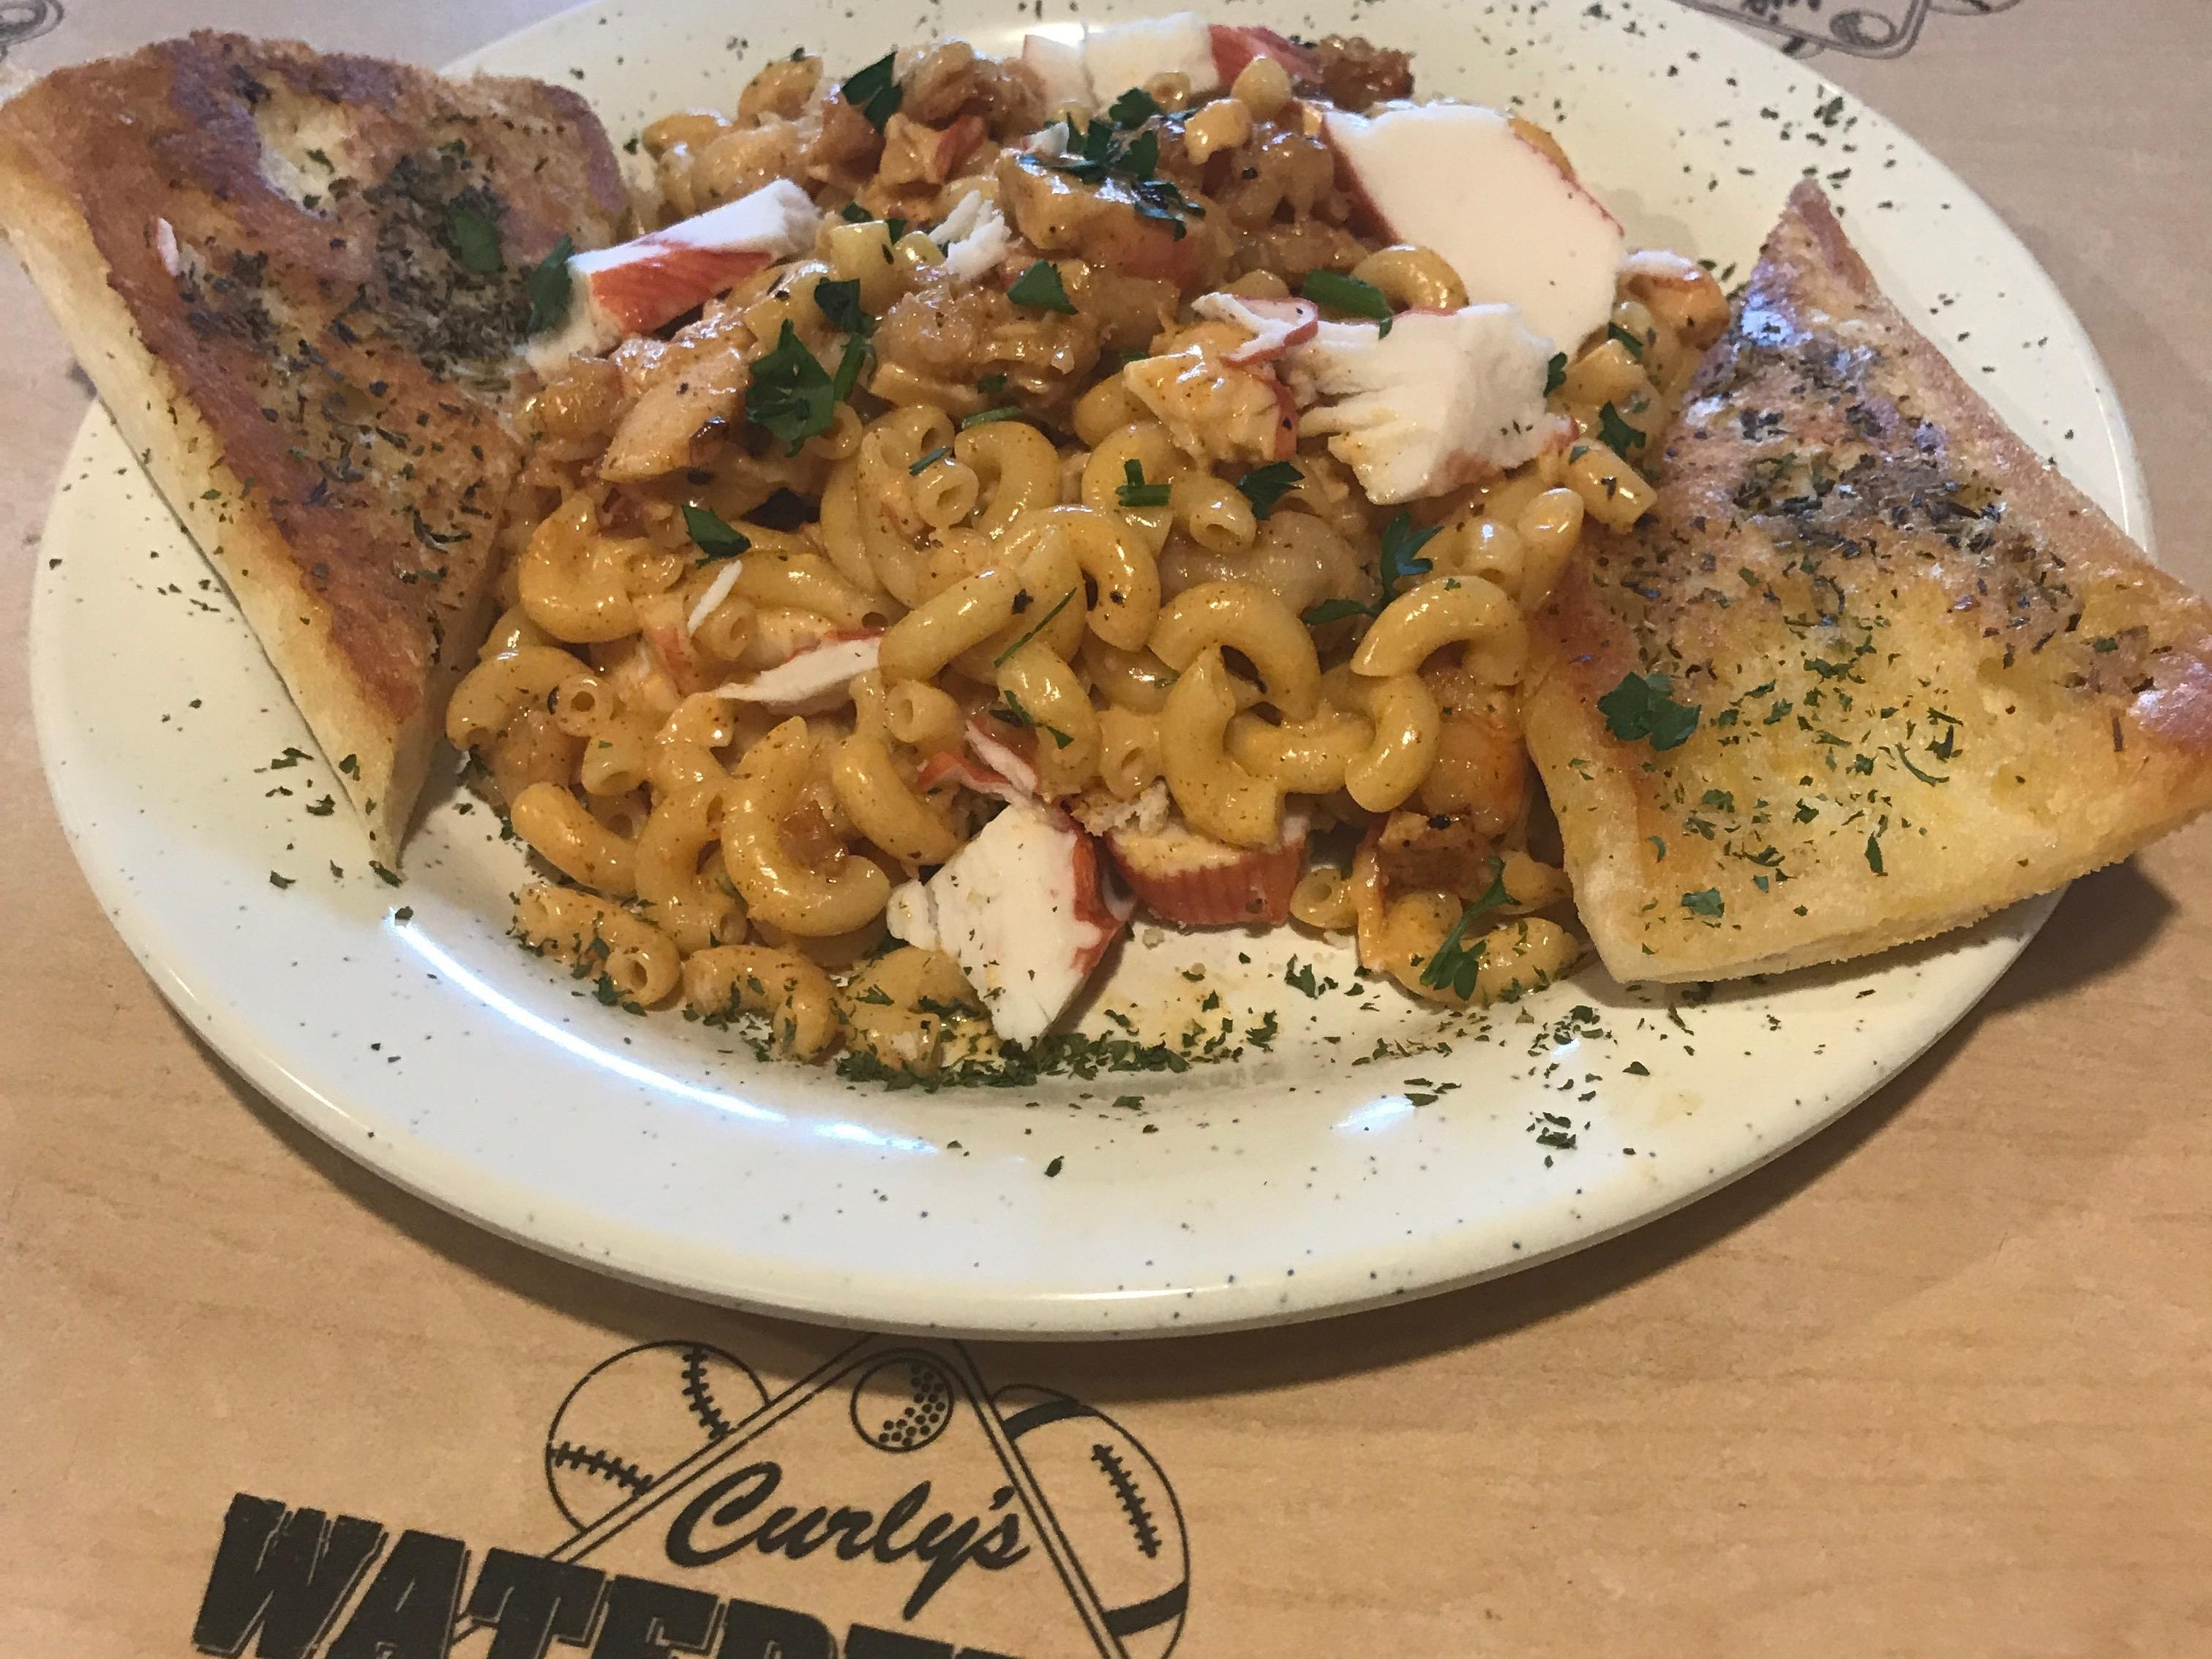 Curly's kitchen manager Genaro Hernandez has been hard at work coming up with innovative new specials like the Shrimp & Crab Mac N Cheese.